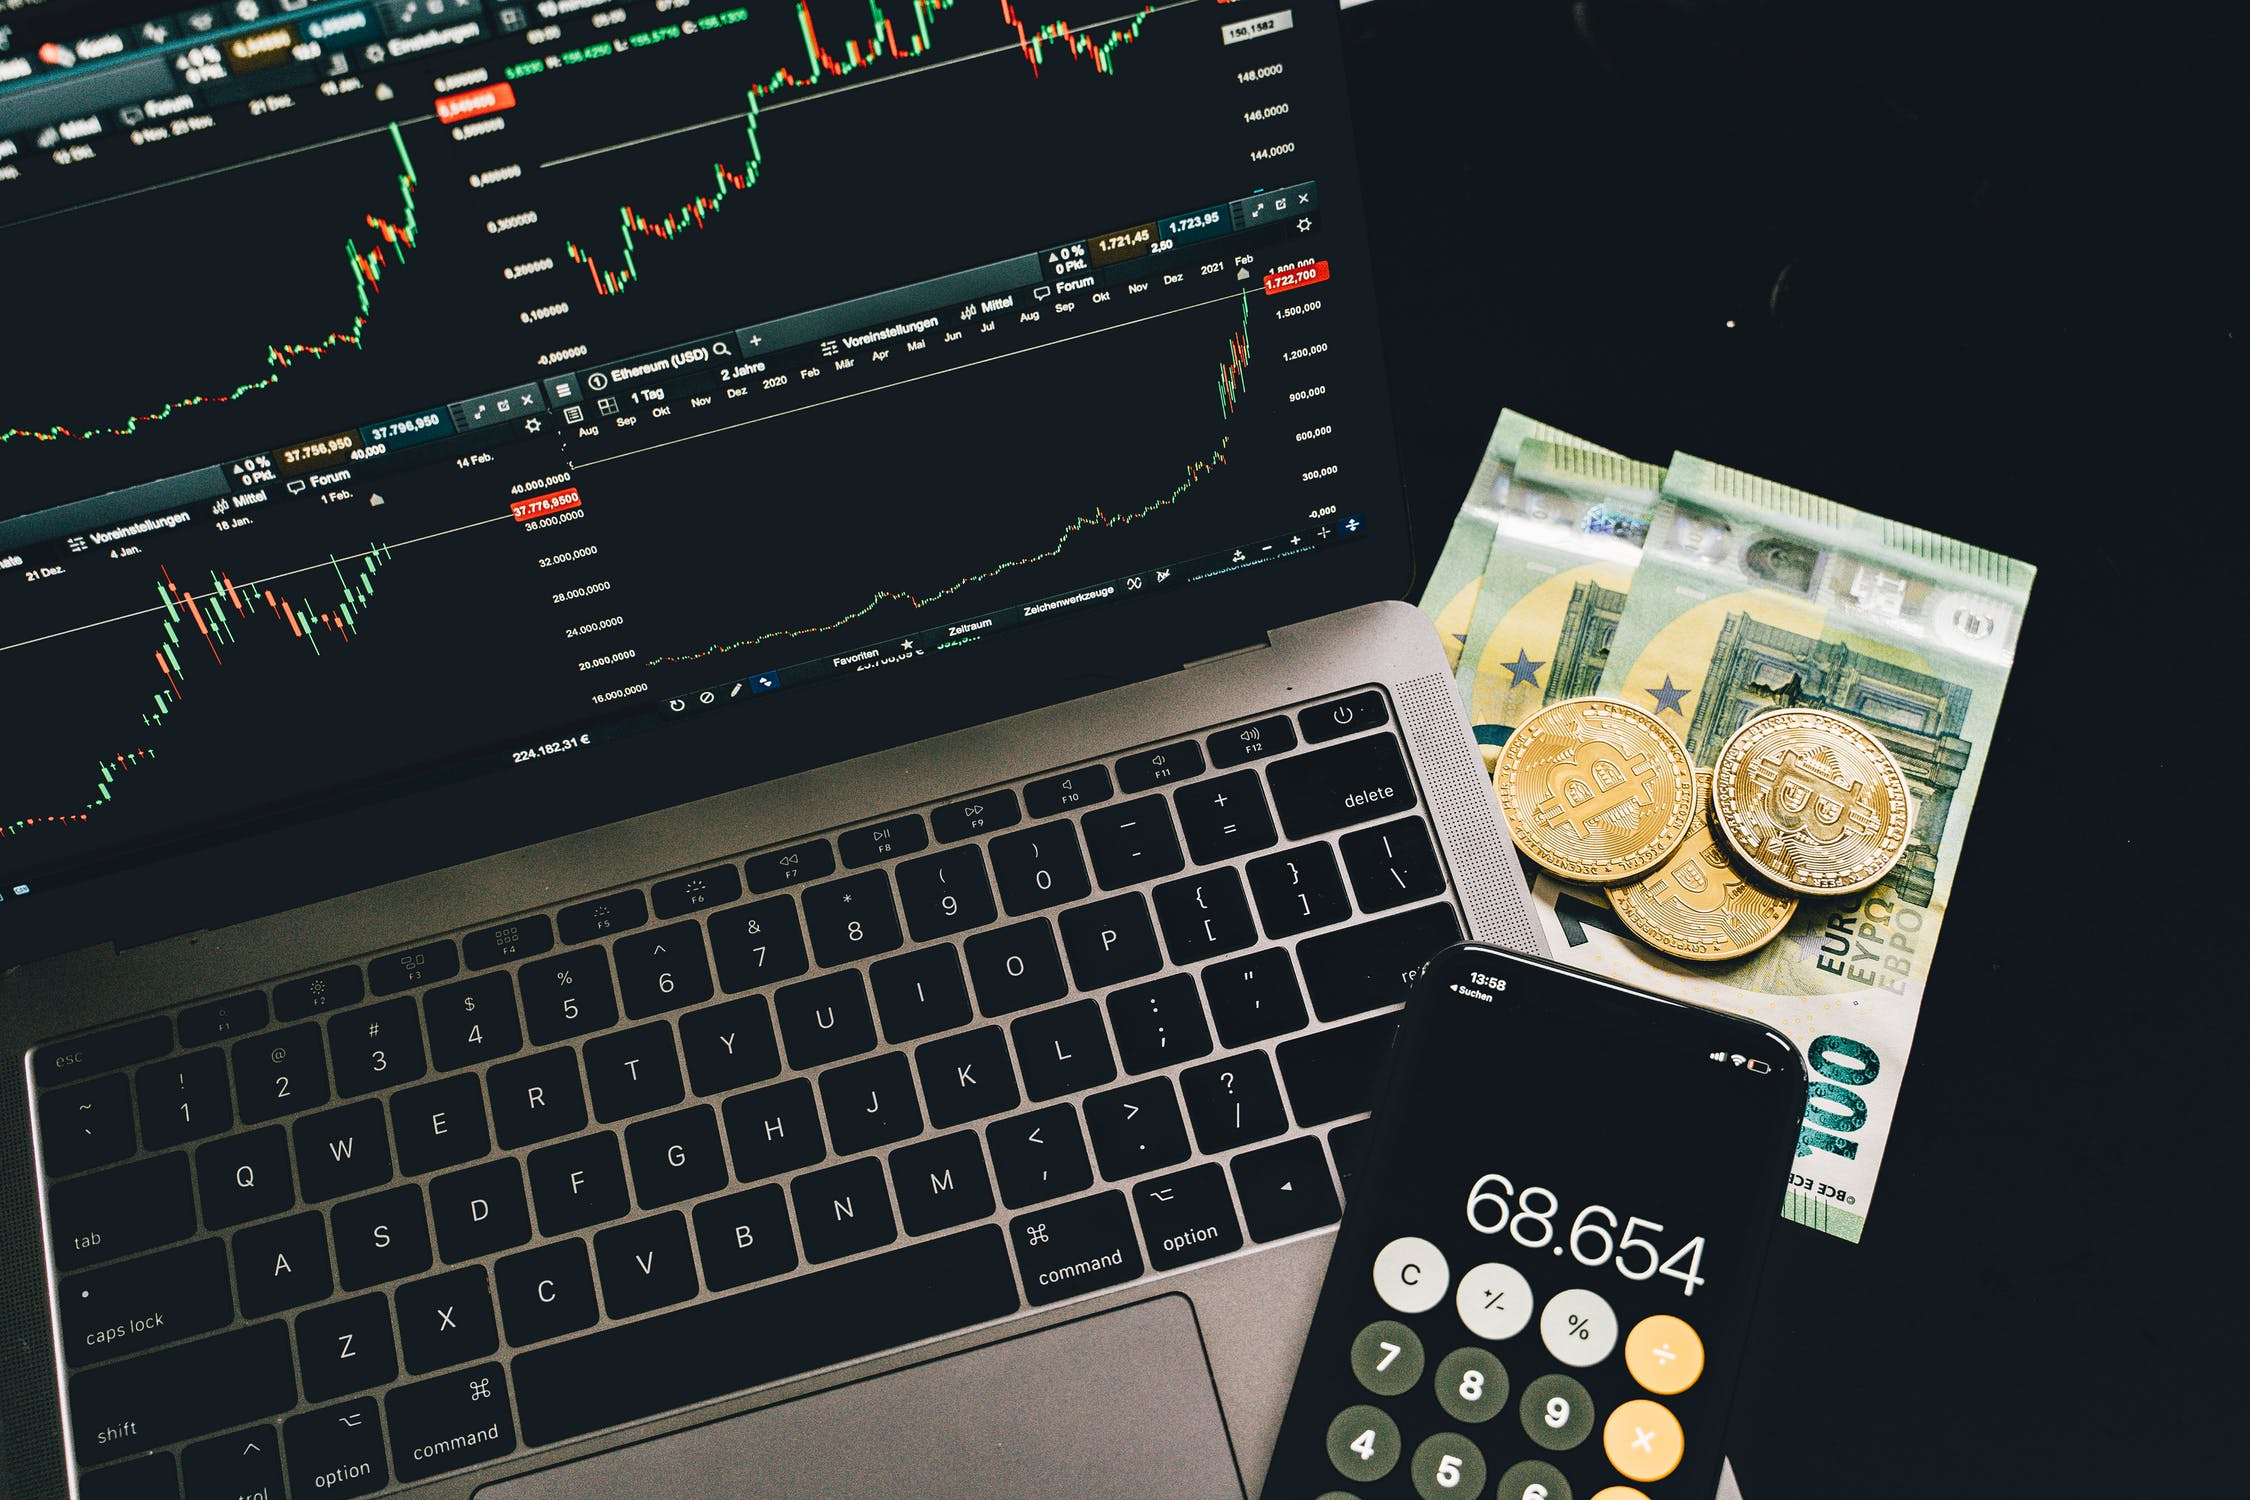 A Review on The Moving Average (MA) Bounce Trading Strategy